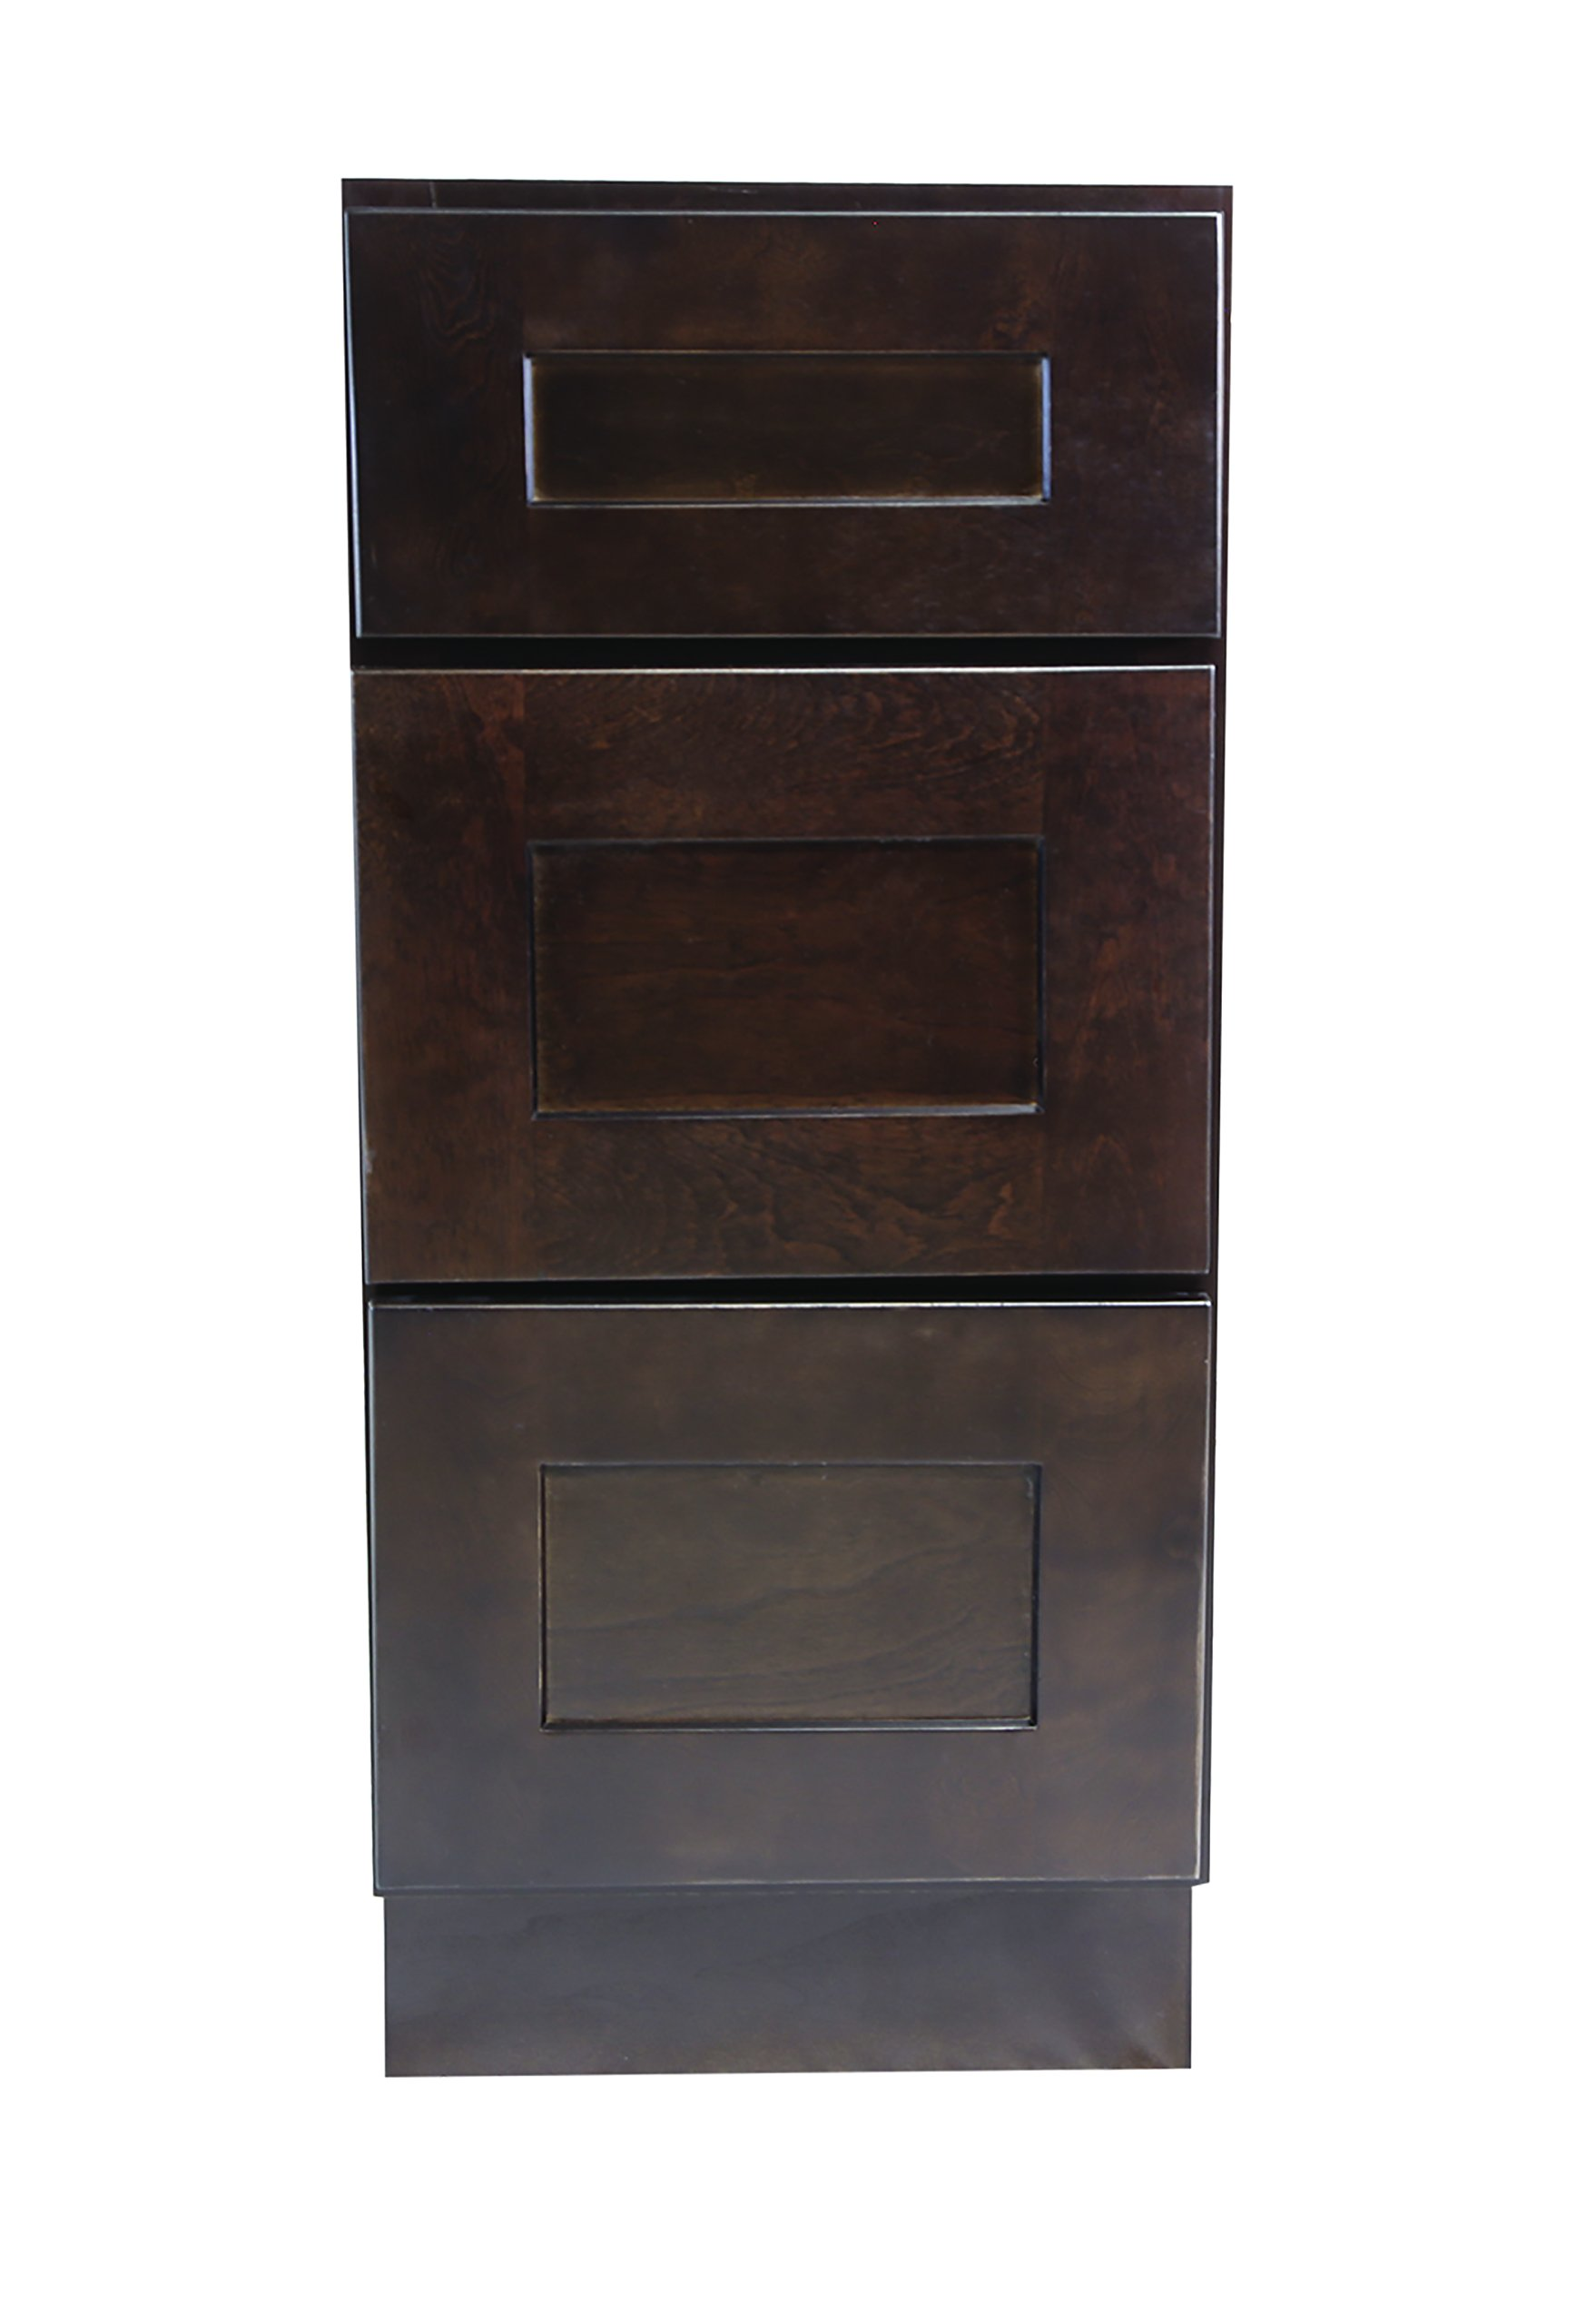 Design House 562041 Brookings 15-Inch Drawer Base Cabinet, Espresso Shaker by Design House